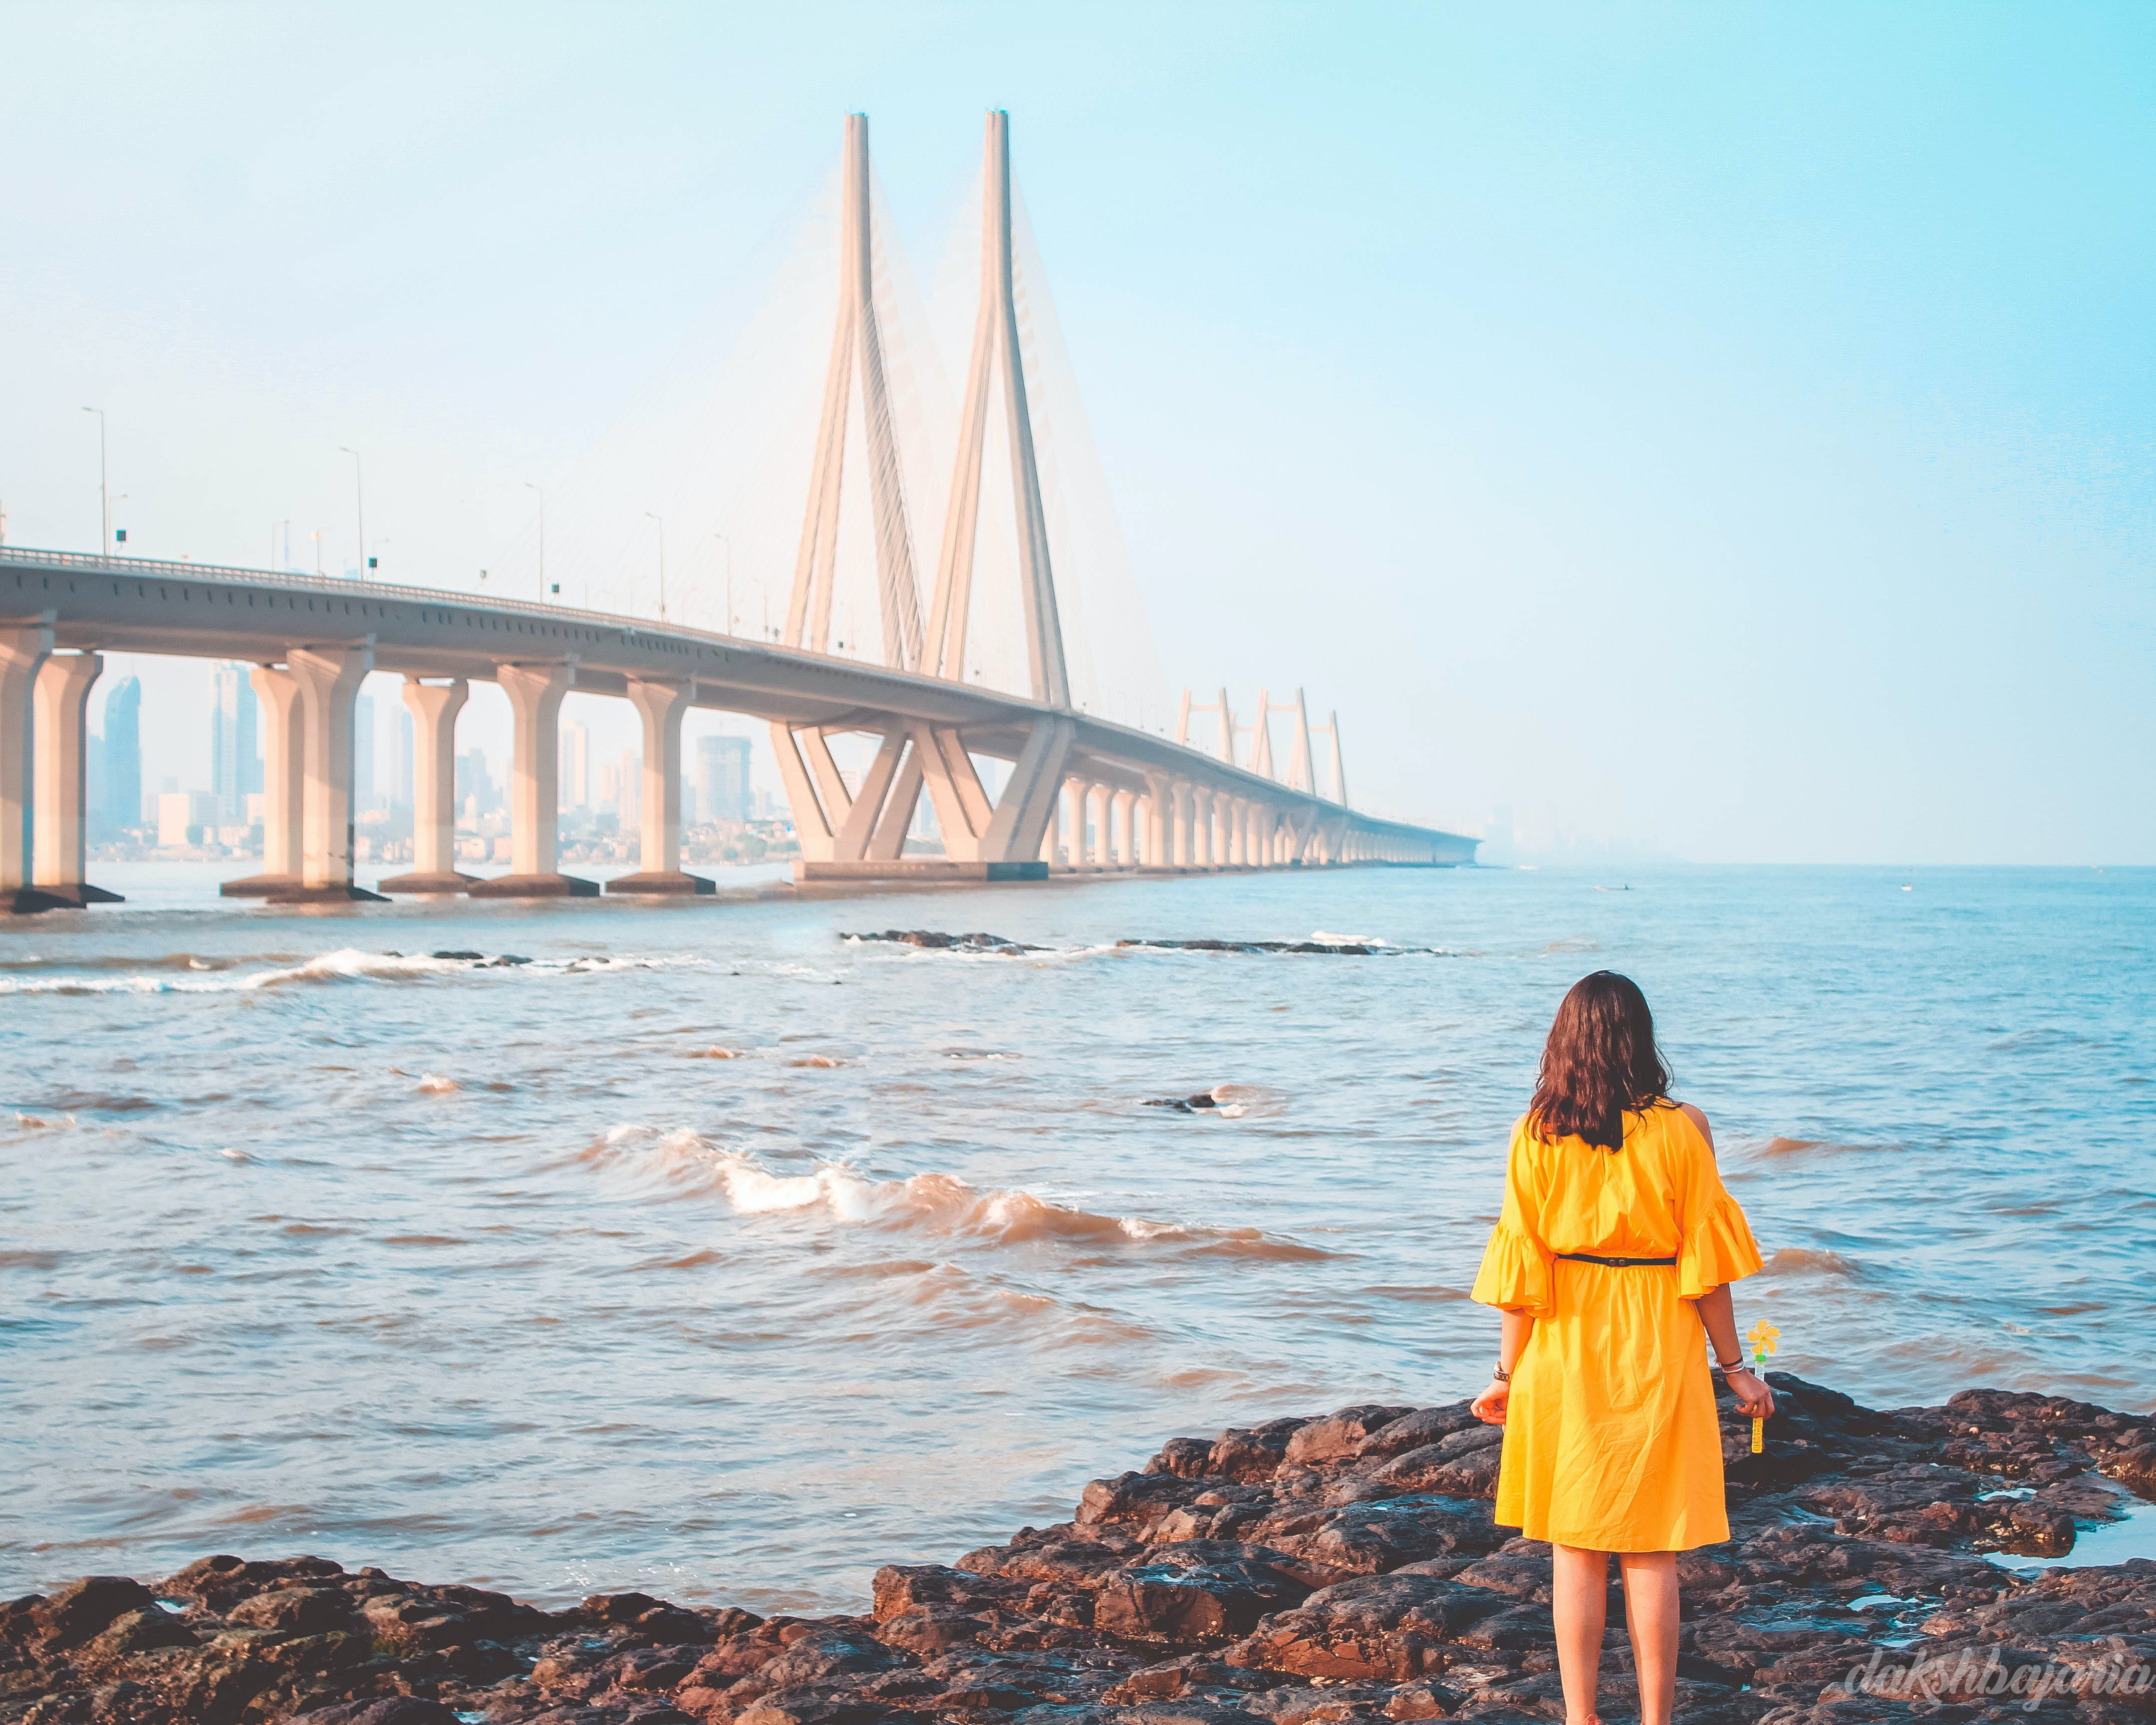 Woman Standing Near Body of Water and Bridge